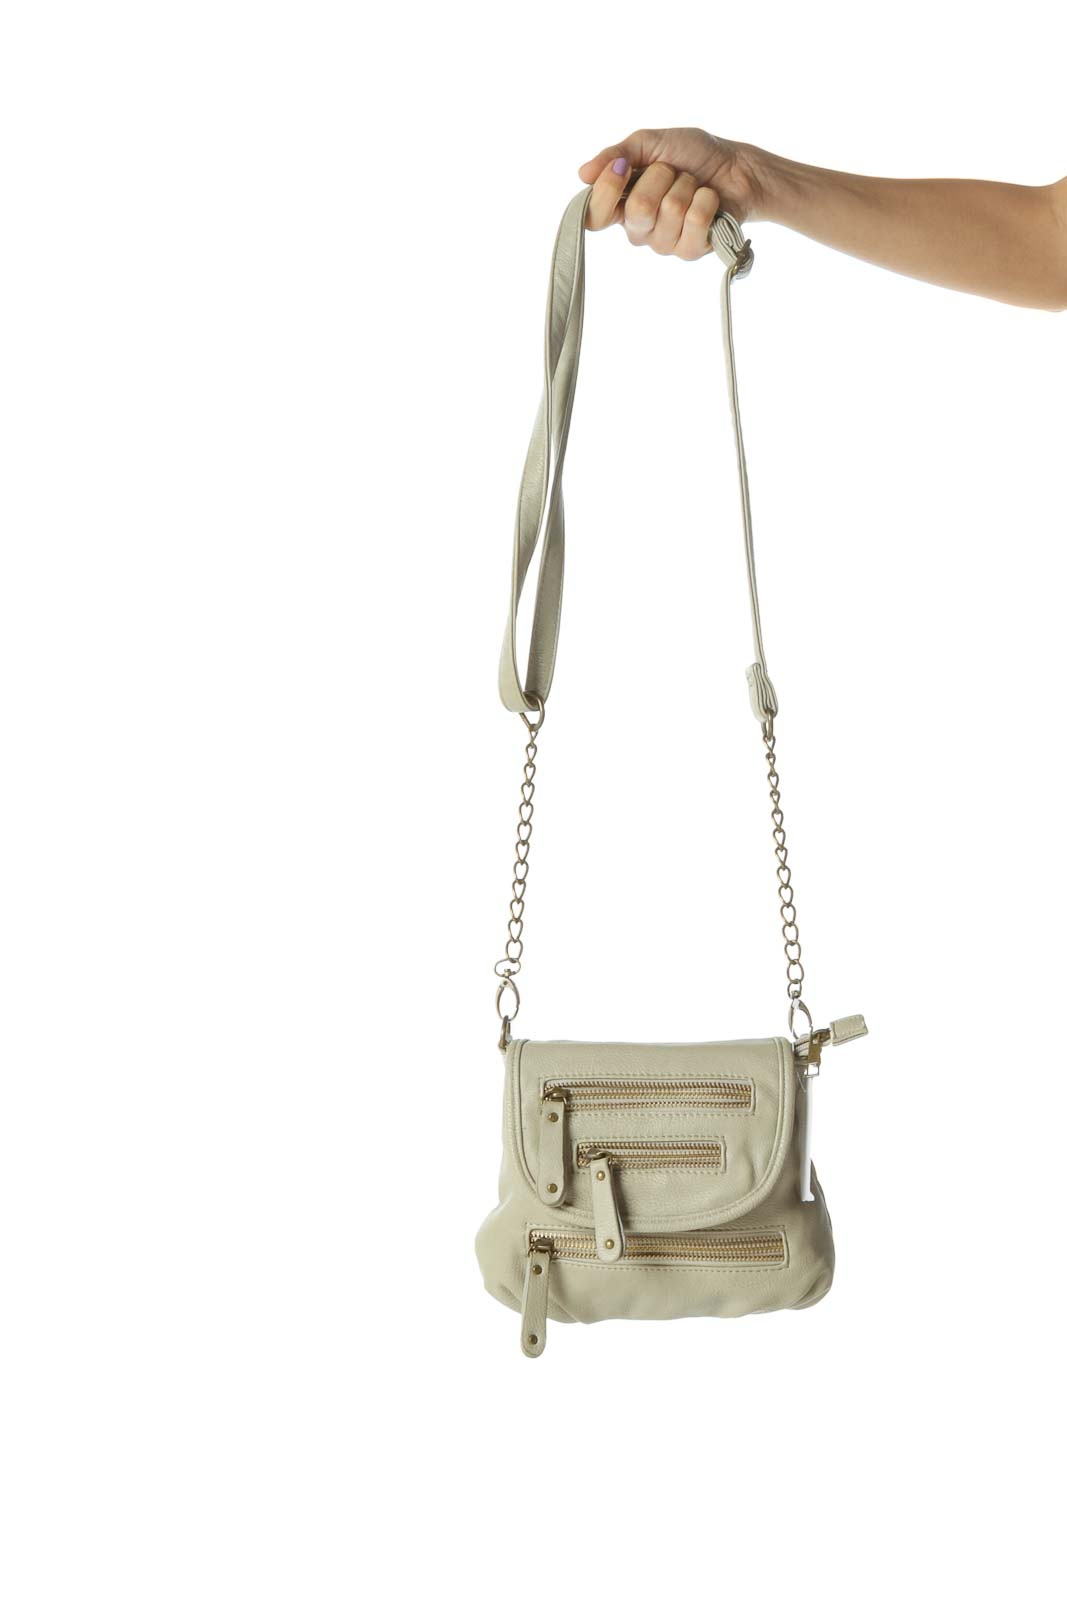 Cream Zippered Crossbody Bag with Removable Chain Strap